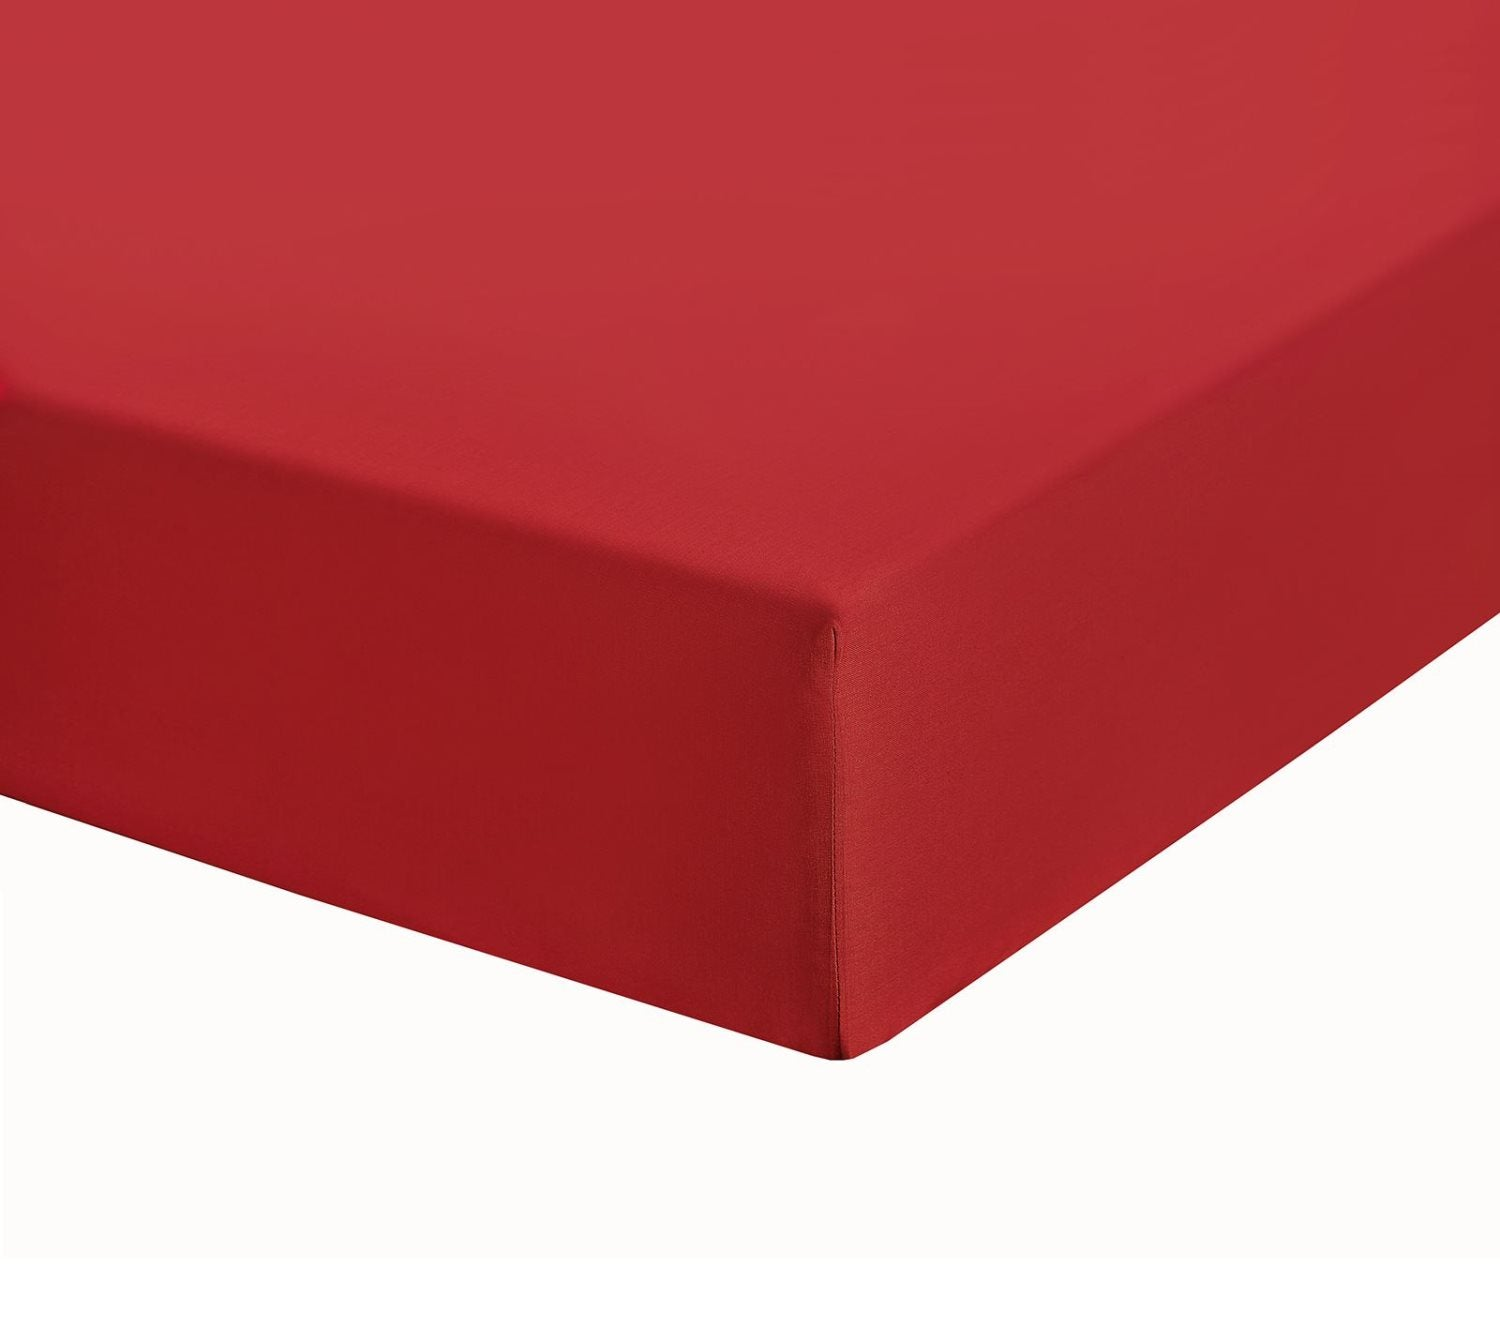 Red Single Bed Fitted Sheet 10 Inch Depth 200Tc